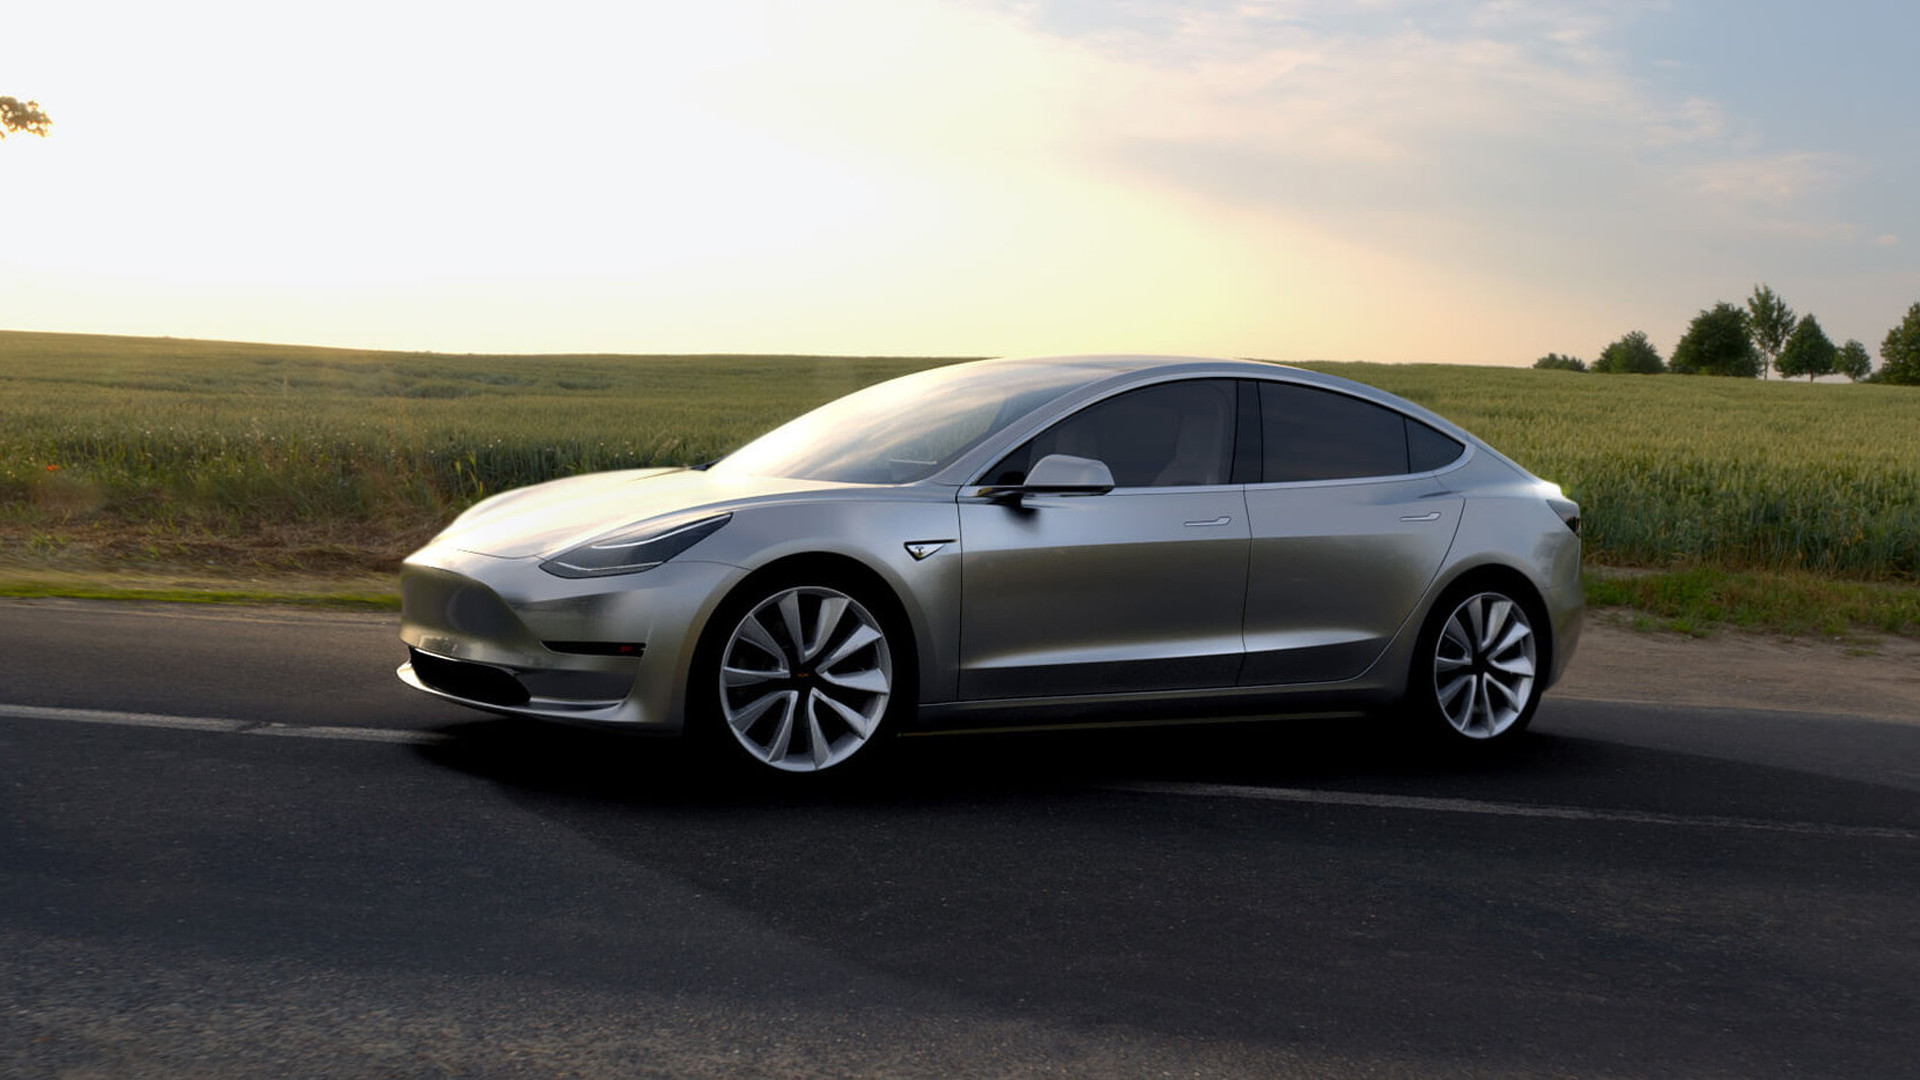 Tesla Model 3 receives 325,000 pre-orders, early customers to get gifts